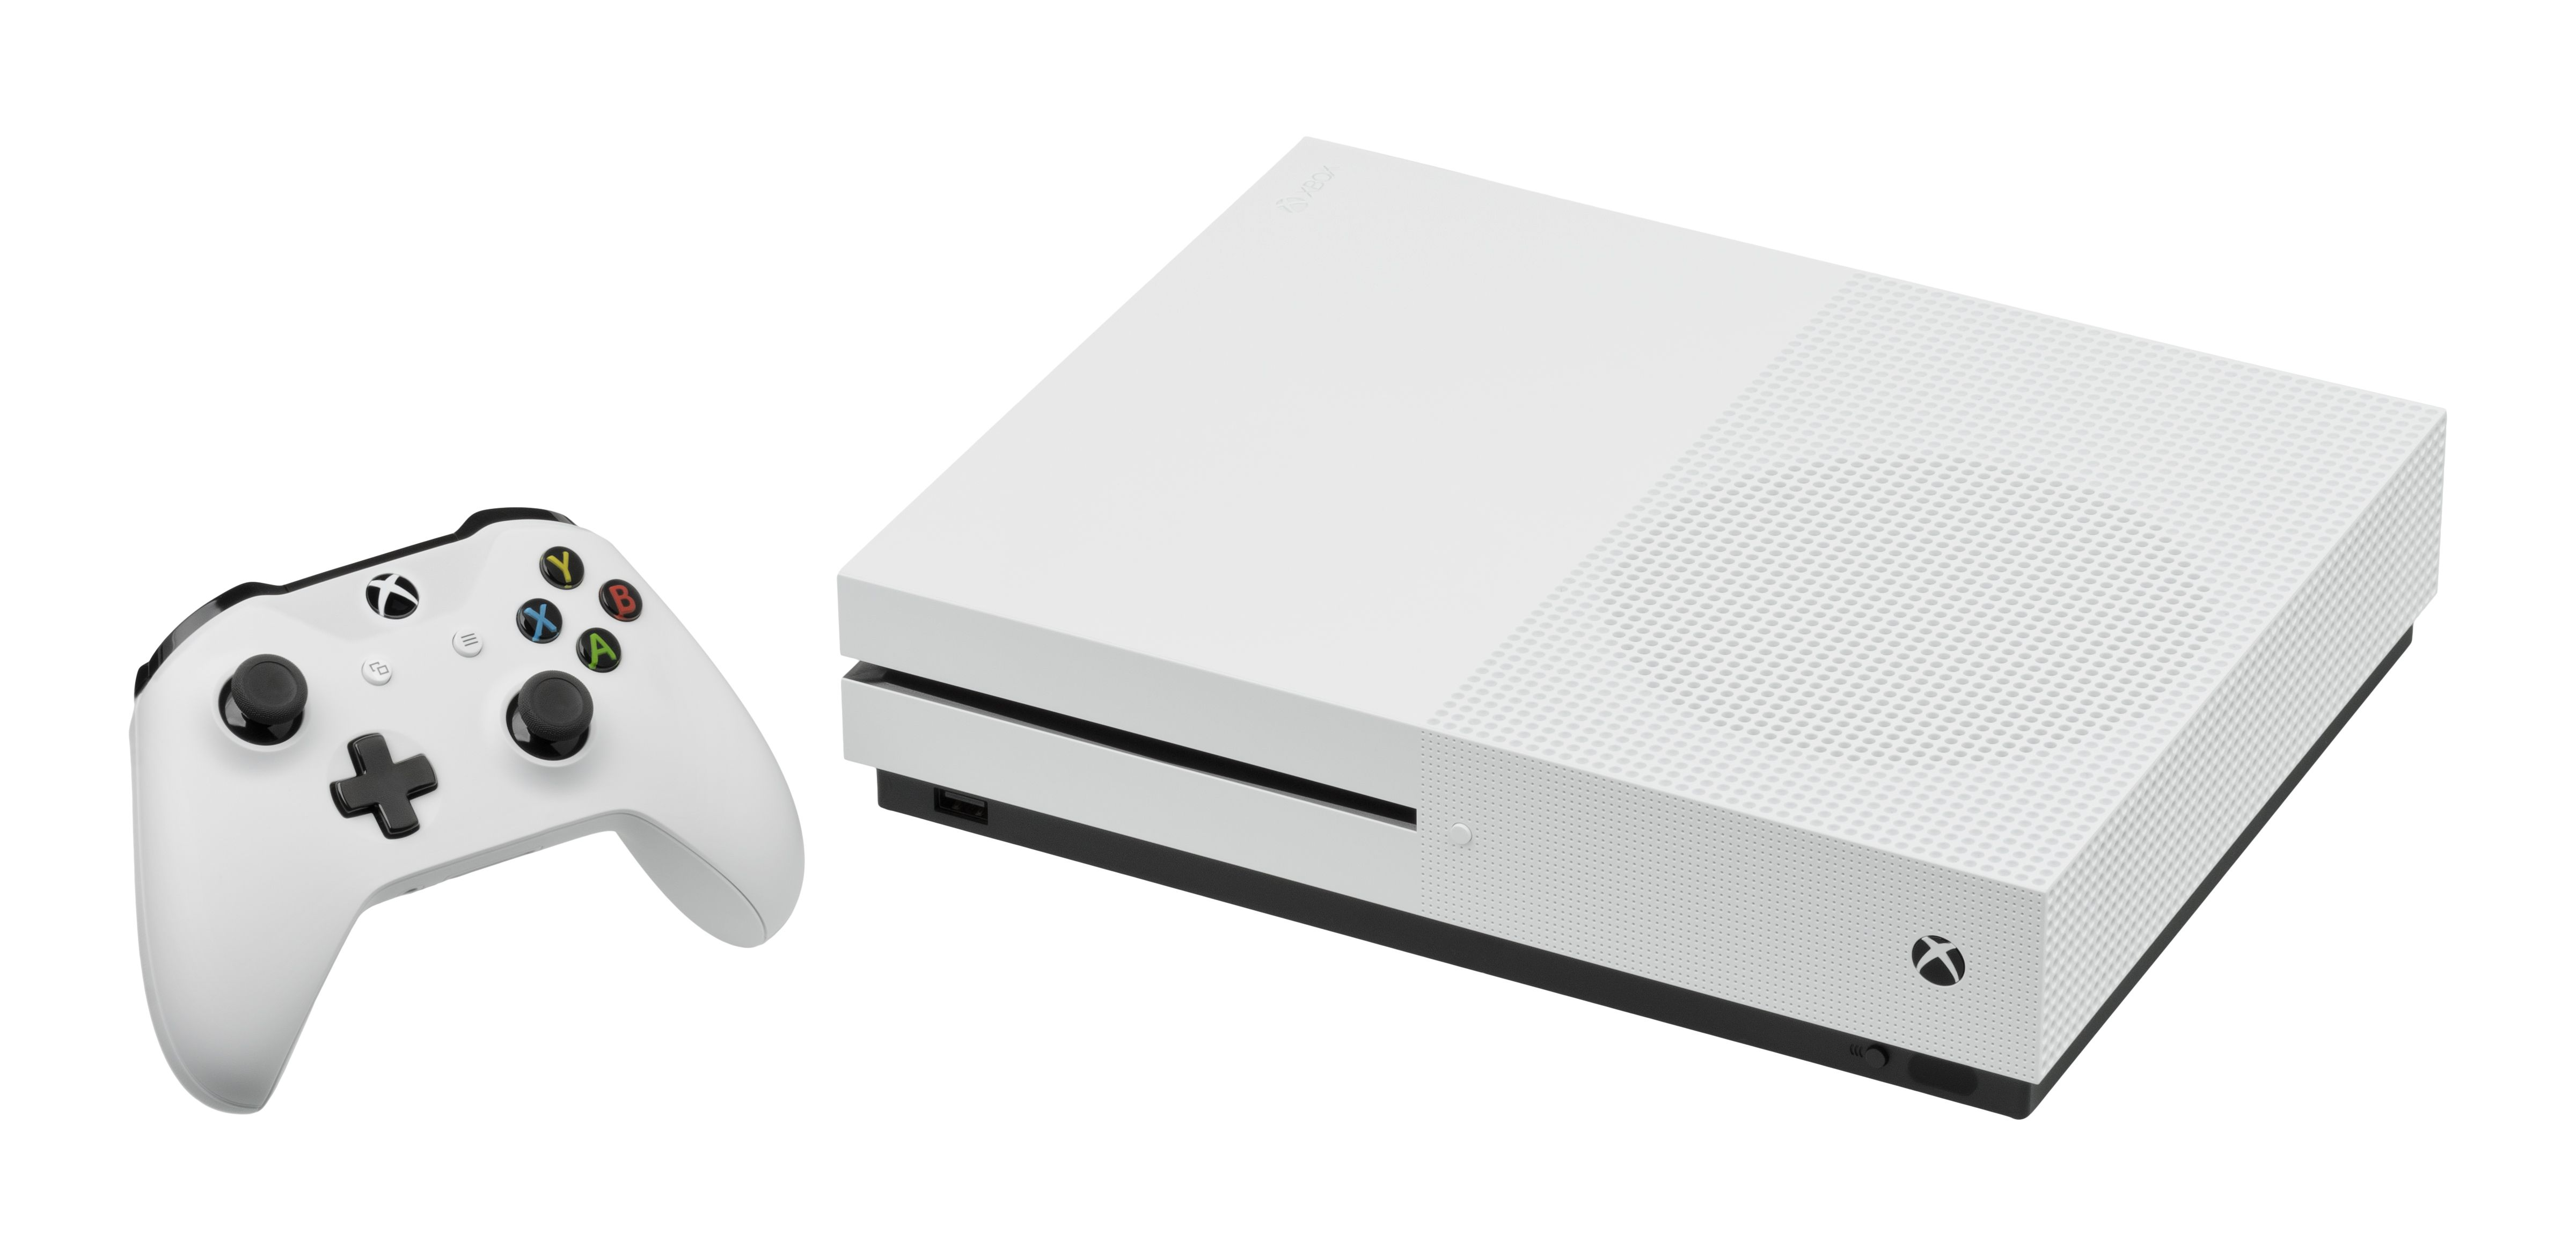 Will Your Xbox 360 Wireless Adapter Work on a Computer?